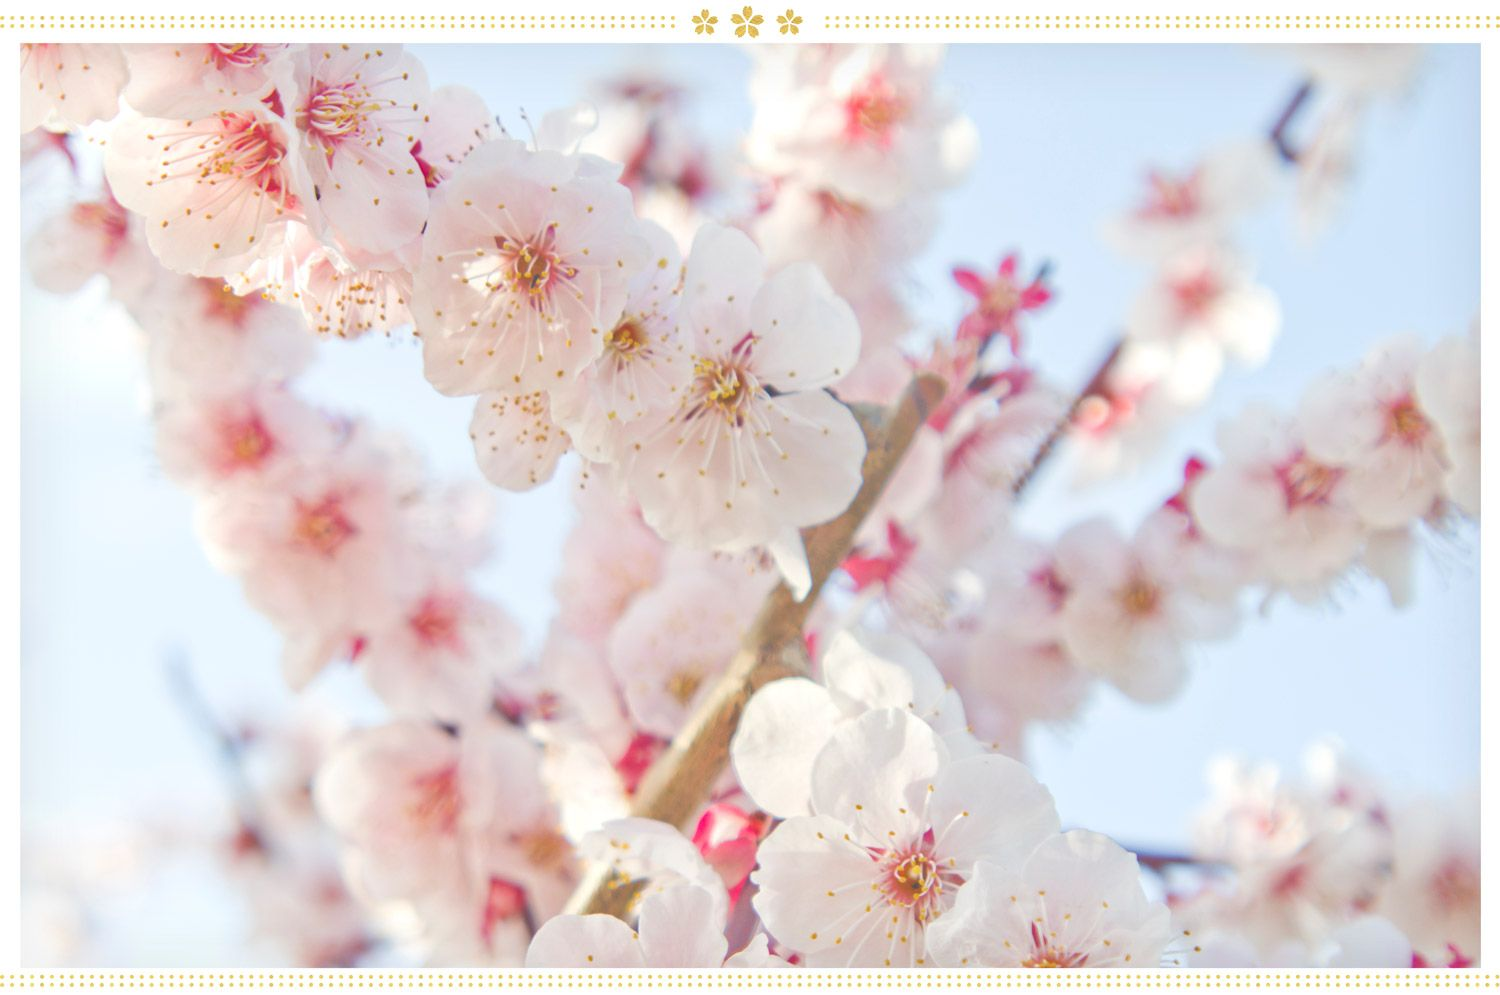 15 Japanese Flower Meanings and Where to Find Them